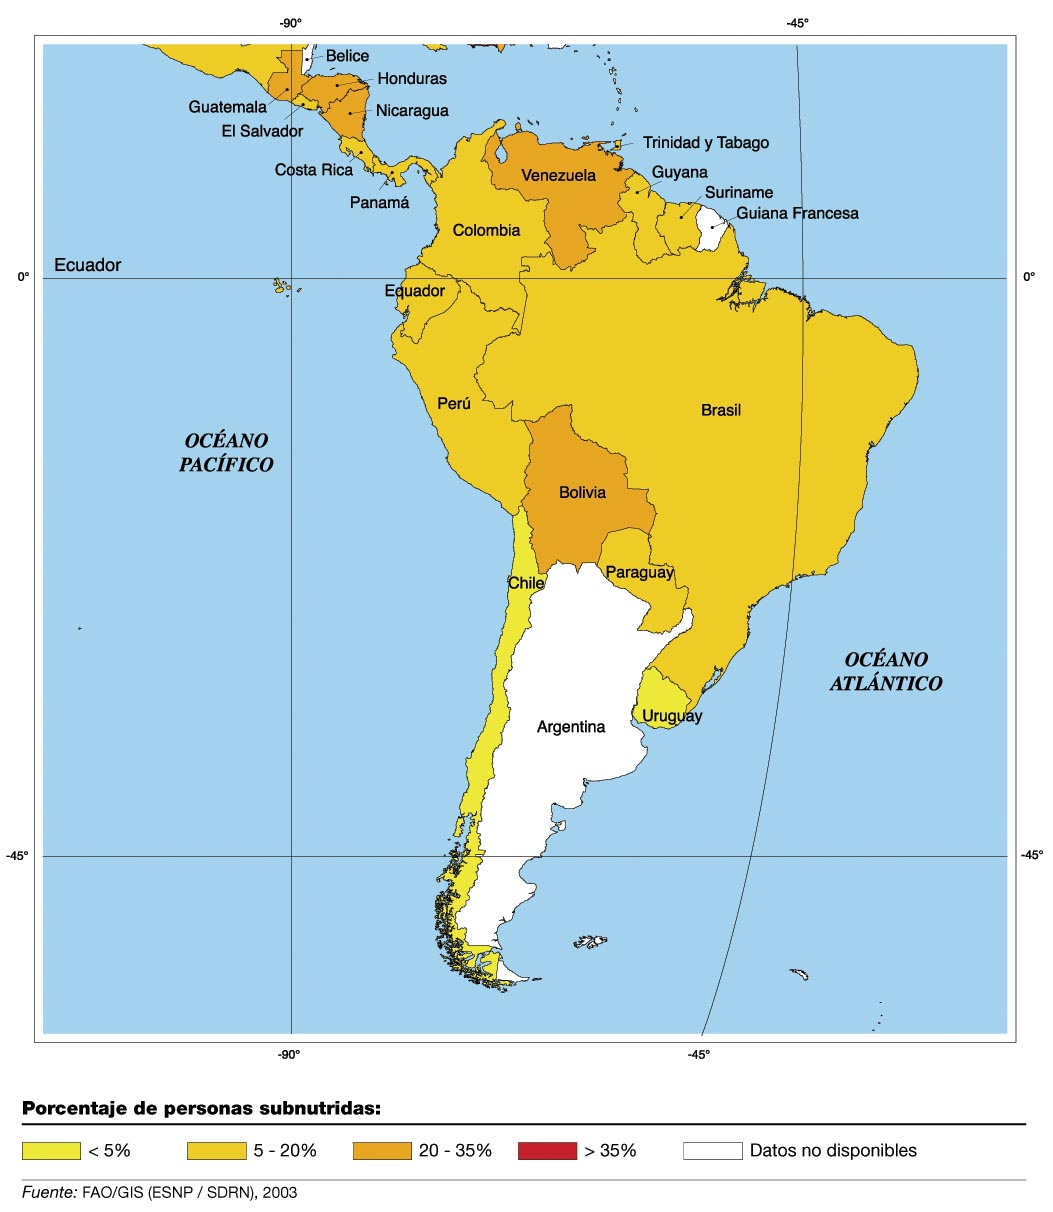 Undernourished population in South America 2003